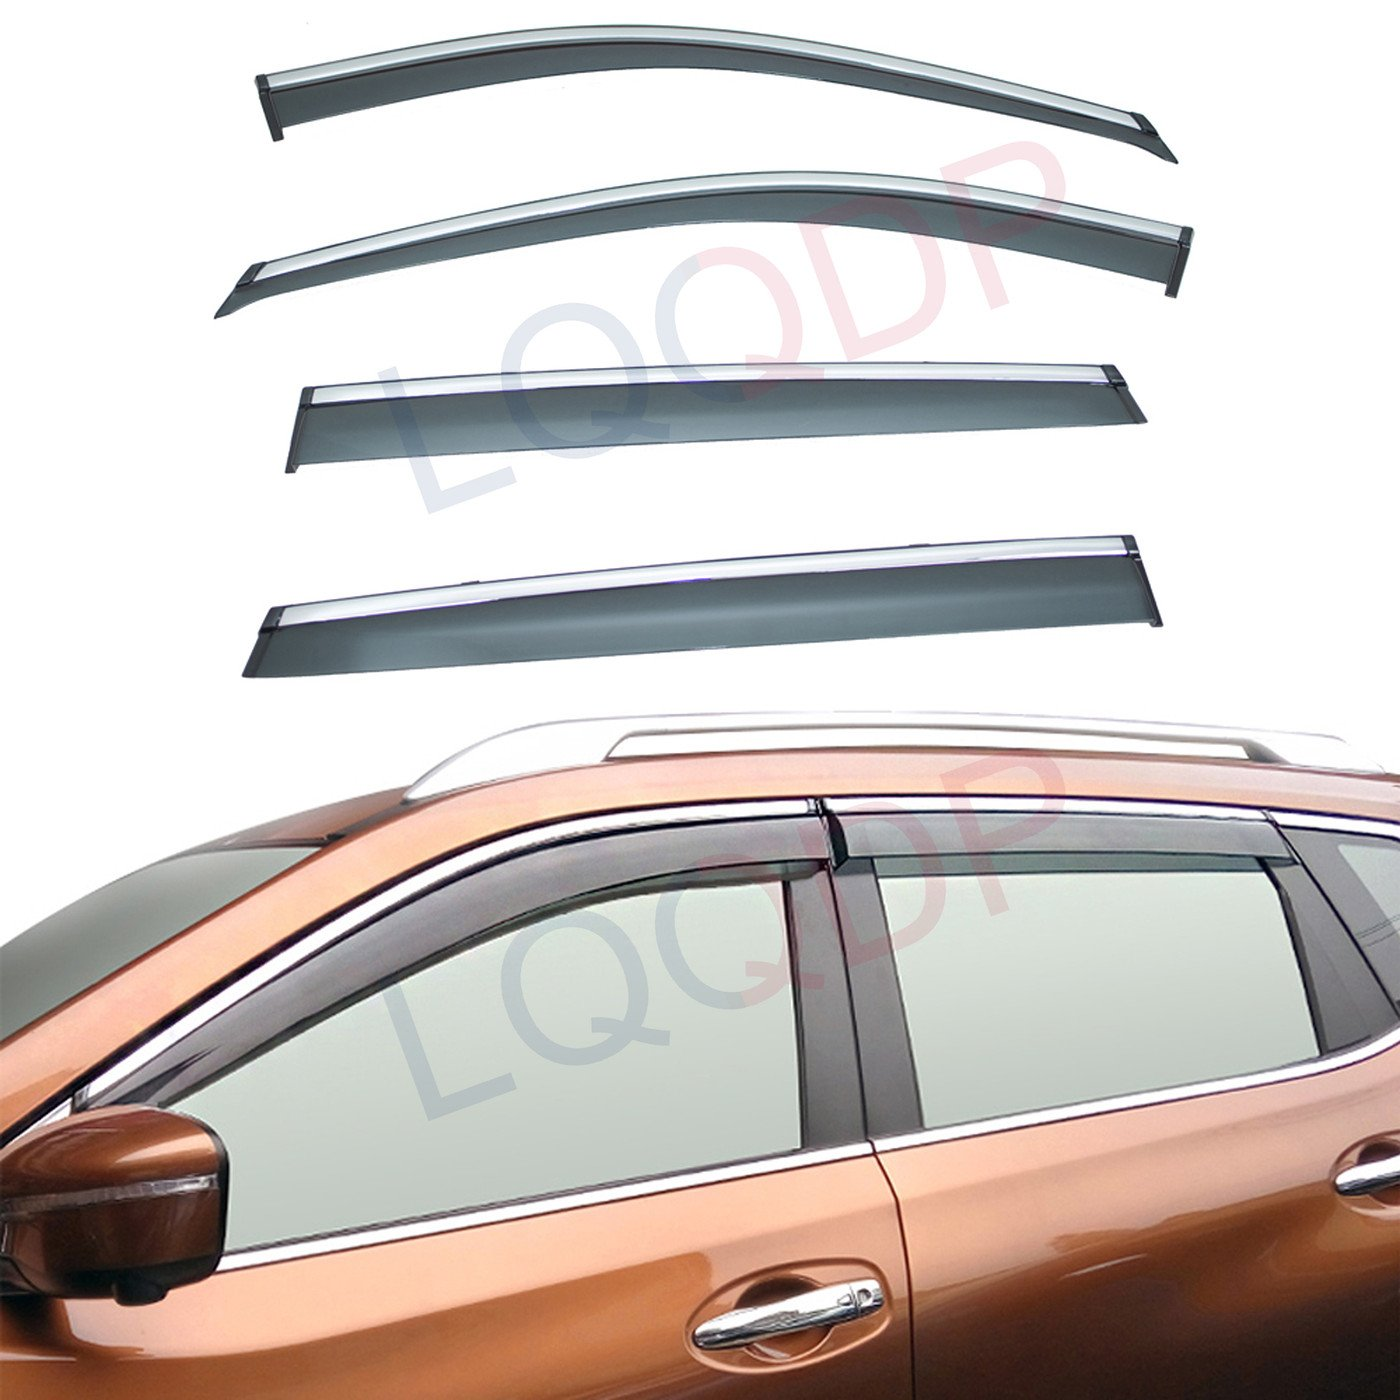 LQQDP 4pcs Smoke Tint With Chrome Trim Outside Mount Tape On//Clip On Style PVC Sun Rain Guard Vent Shade Window Visors Fit 14-18 Nissan X-Trail//Rogue